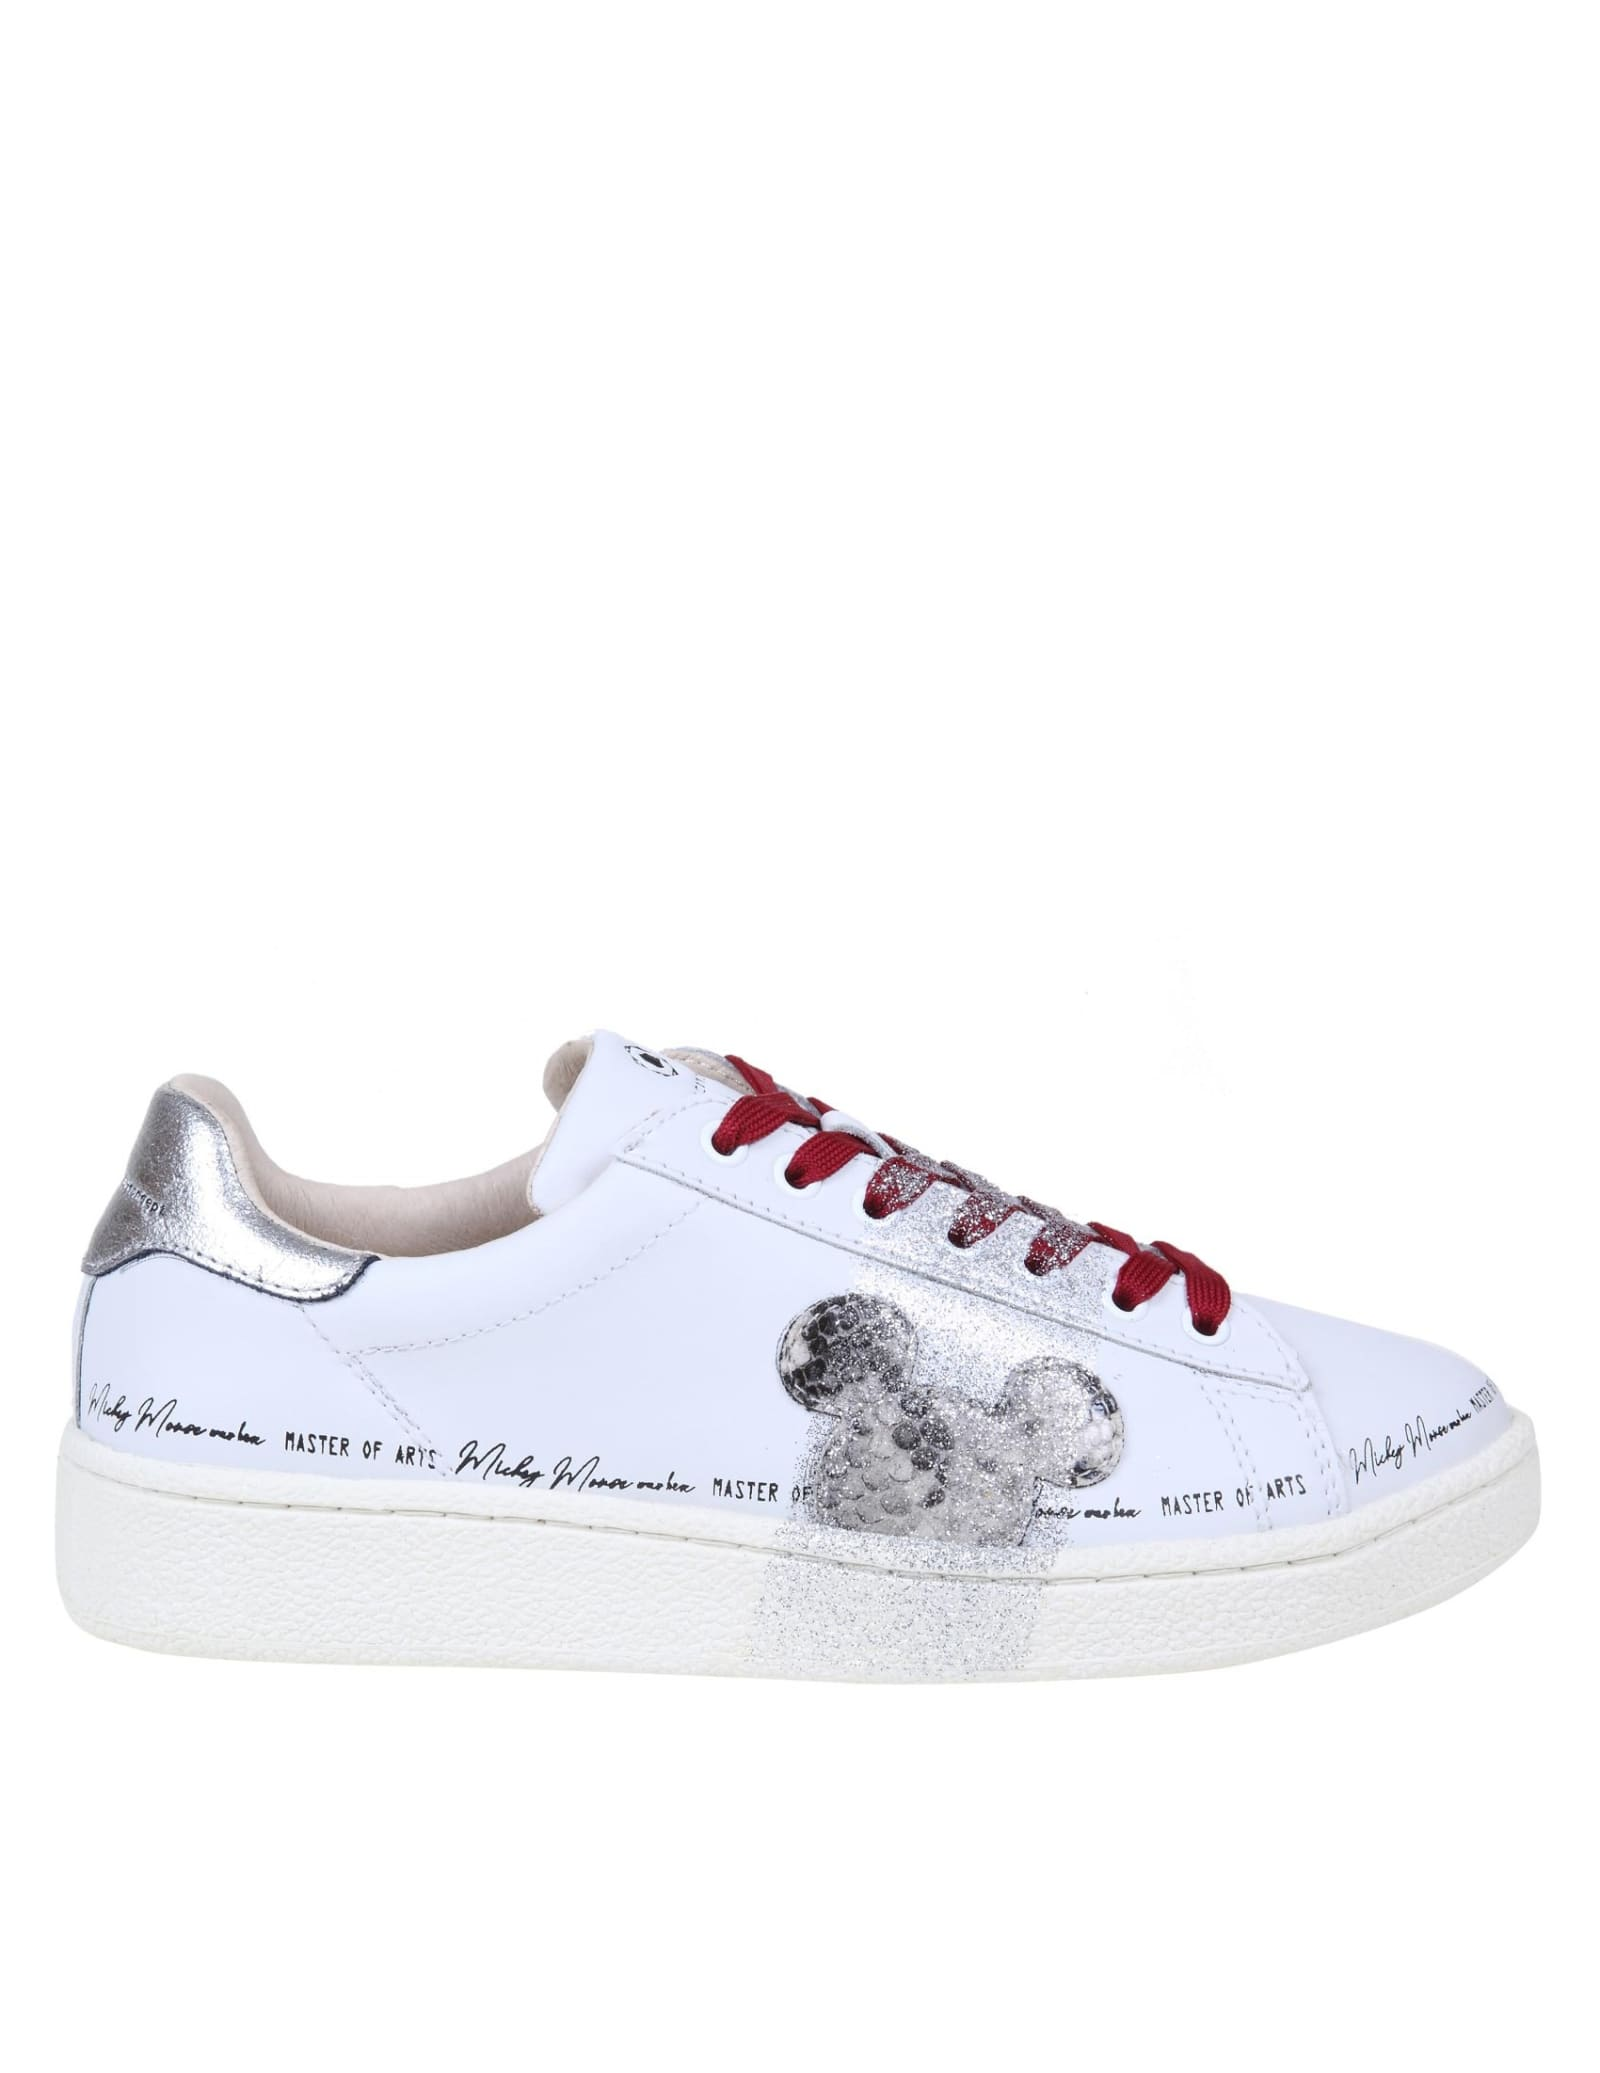 Moa Master Of Arts MOA SNEAKERS IN LEATHER WITH GLITTER DETAIL